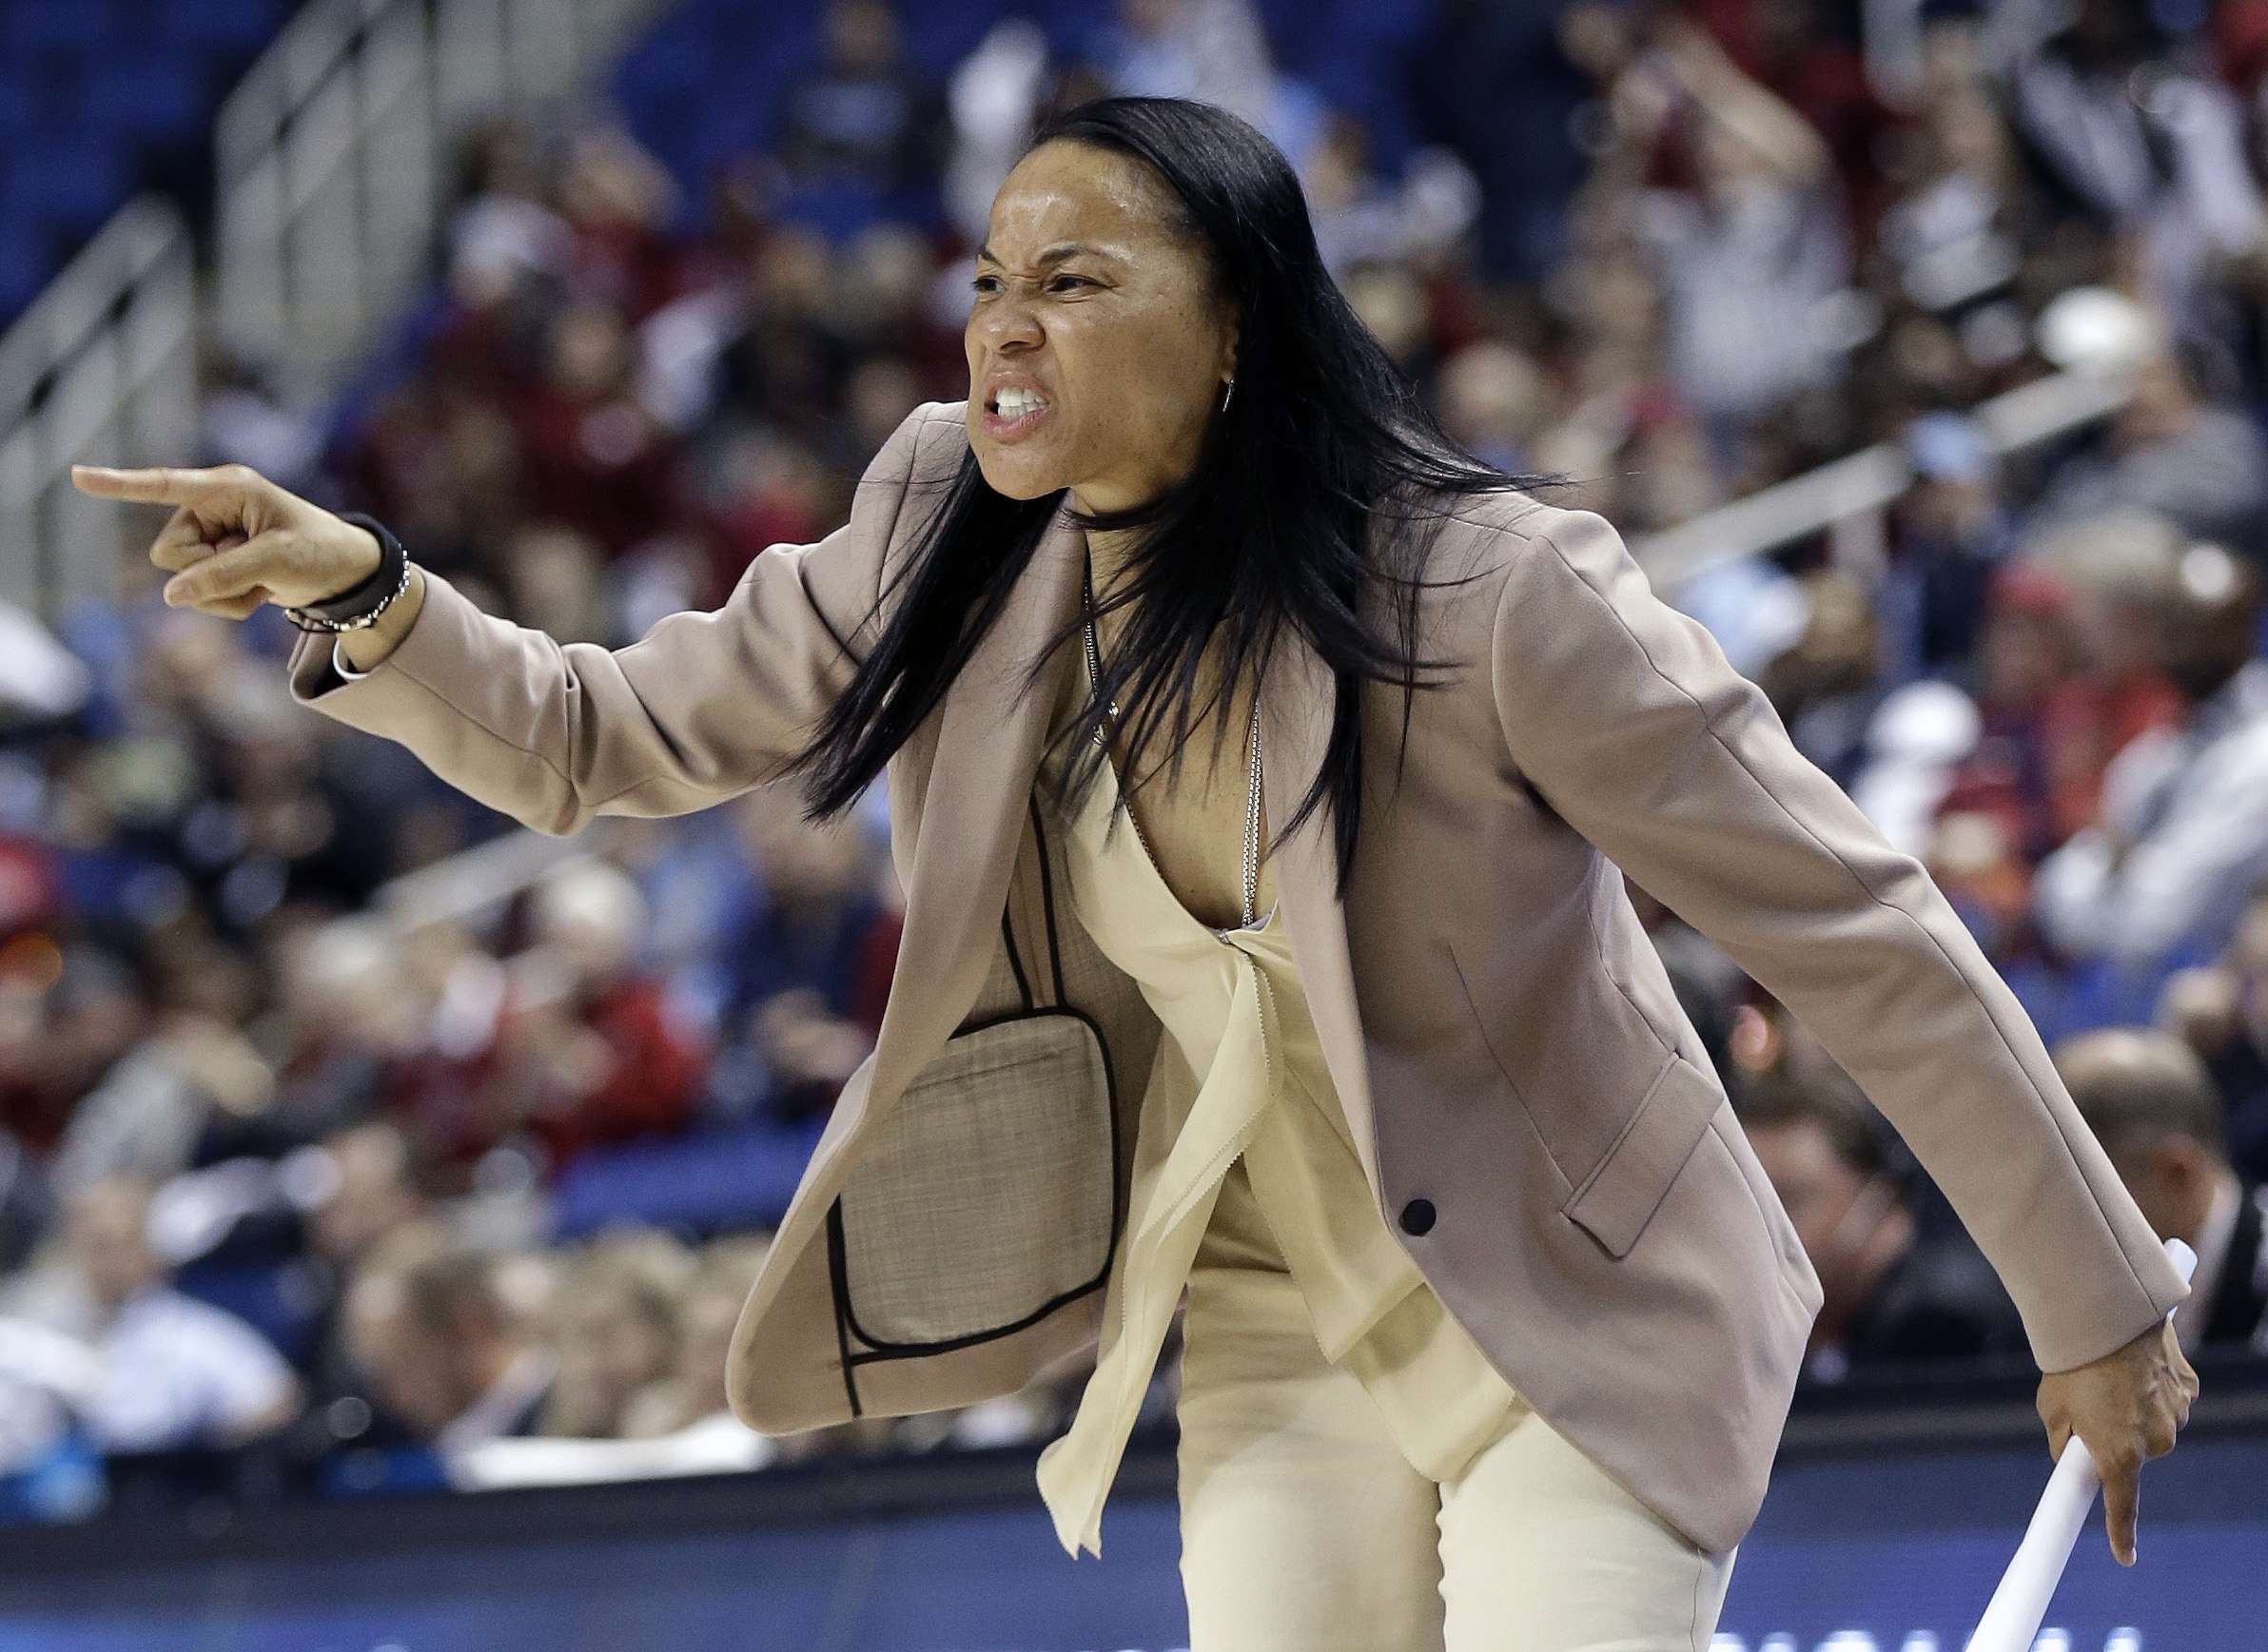 FILE - In this March 27, 2015, file photo, South Carolina coach Dawn Staley directs her team during the first half of a women's college basketball regional semifinal game against North Carolina in the NCAA Tournament Greensboro, N.C. Staley and No. 2 Sout